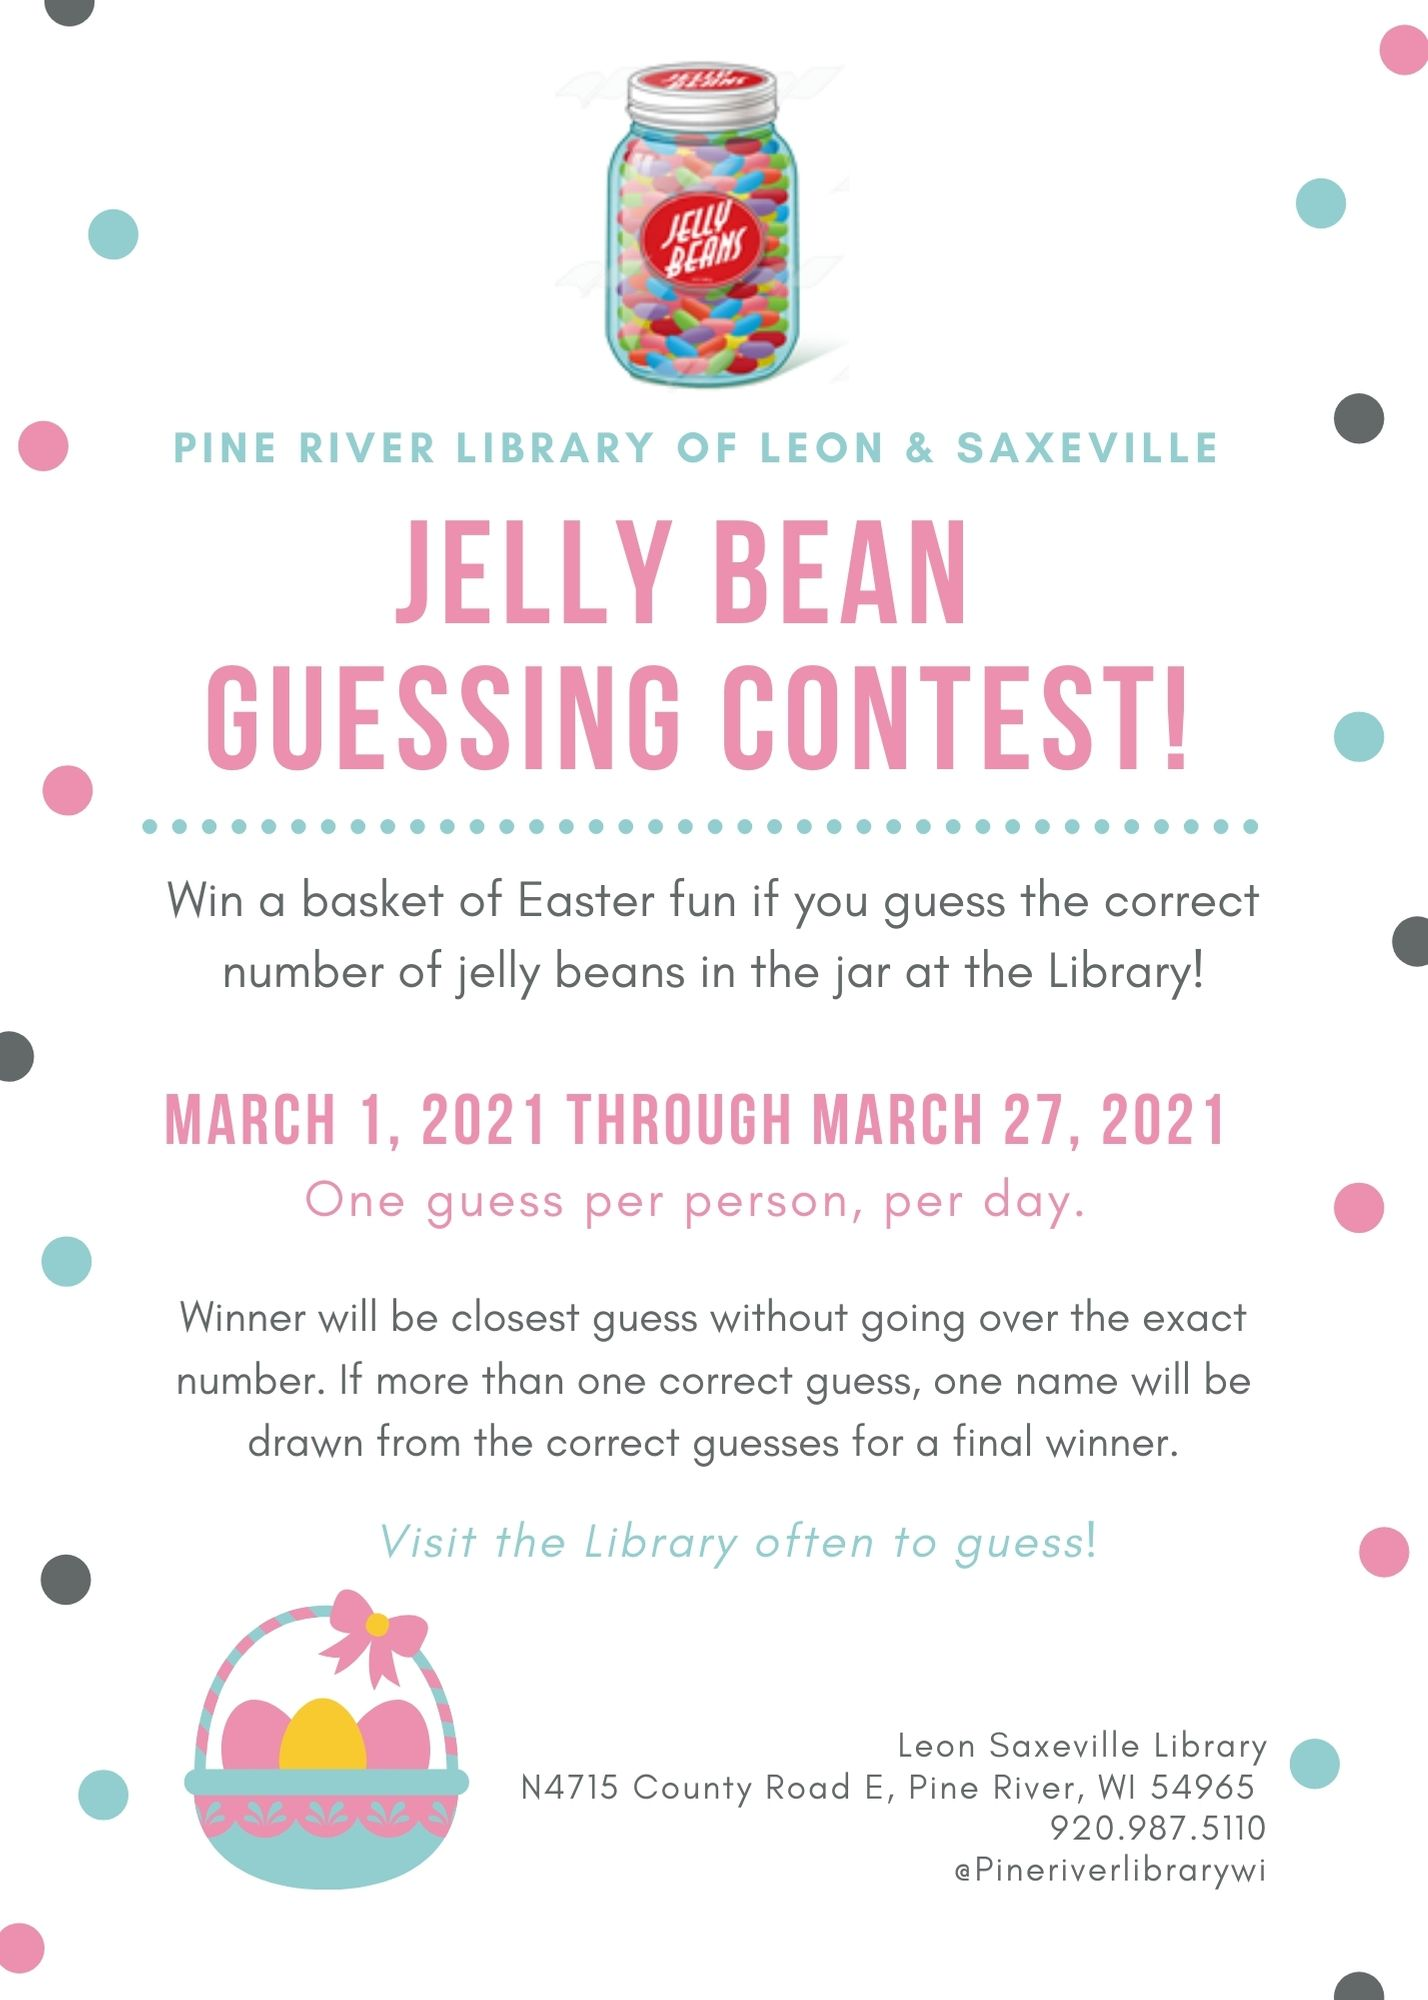 Guess the Jelly Beans!